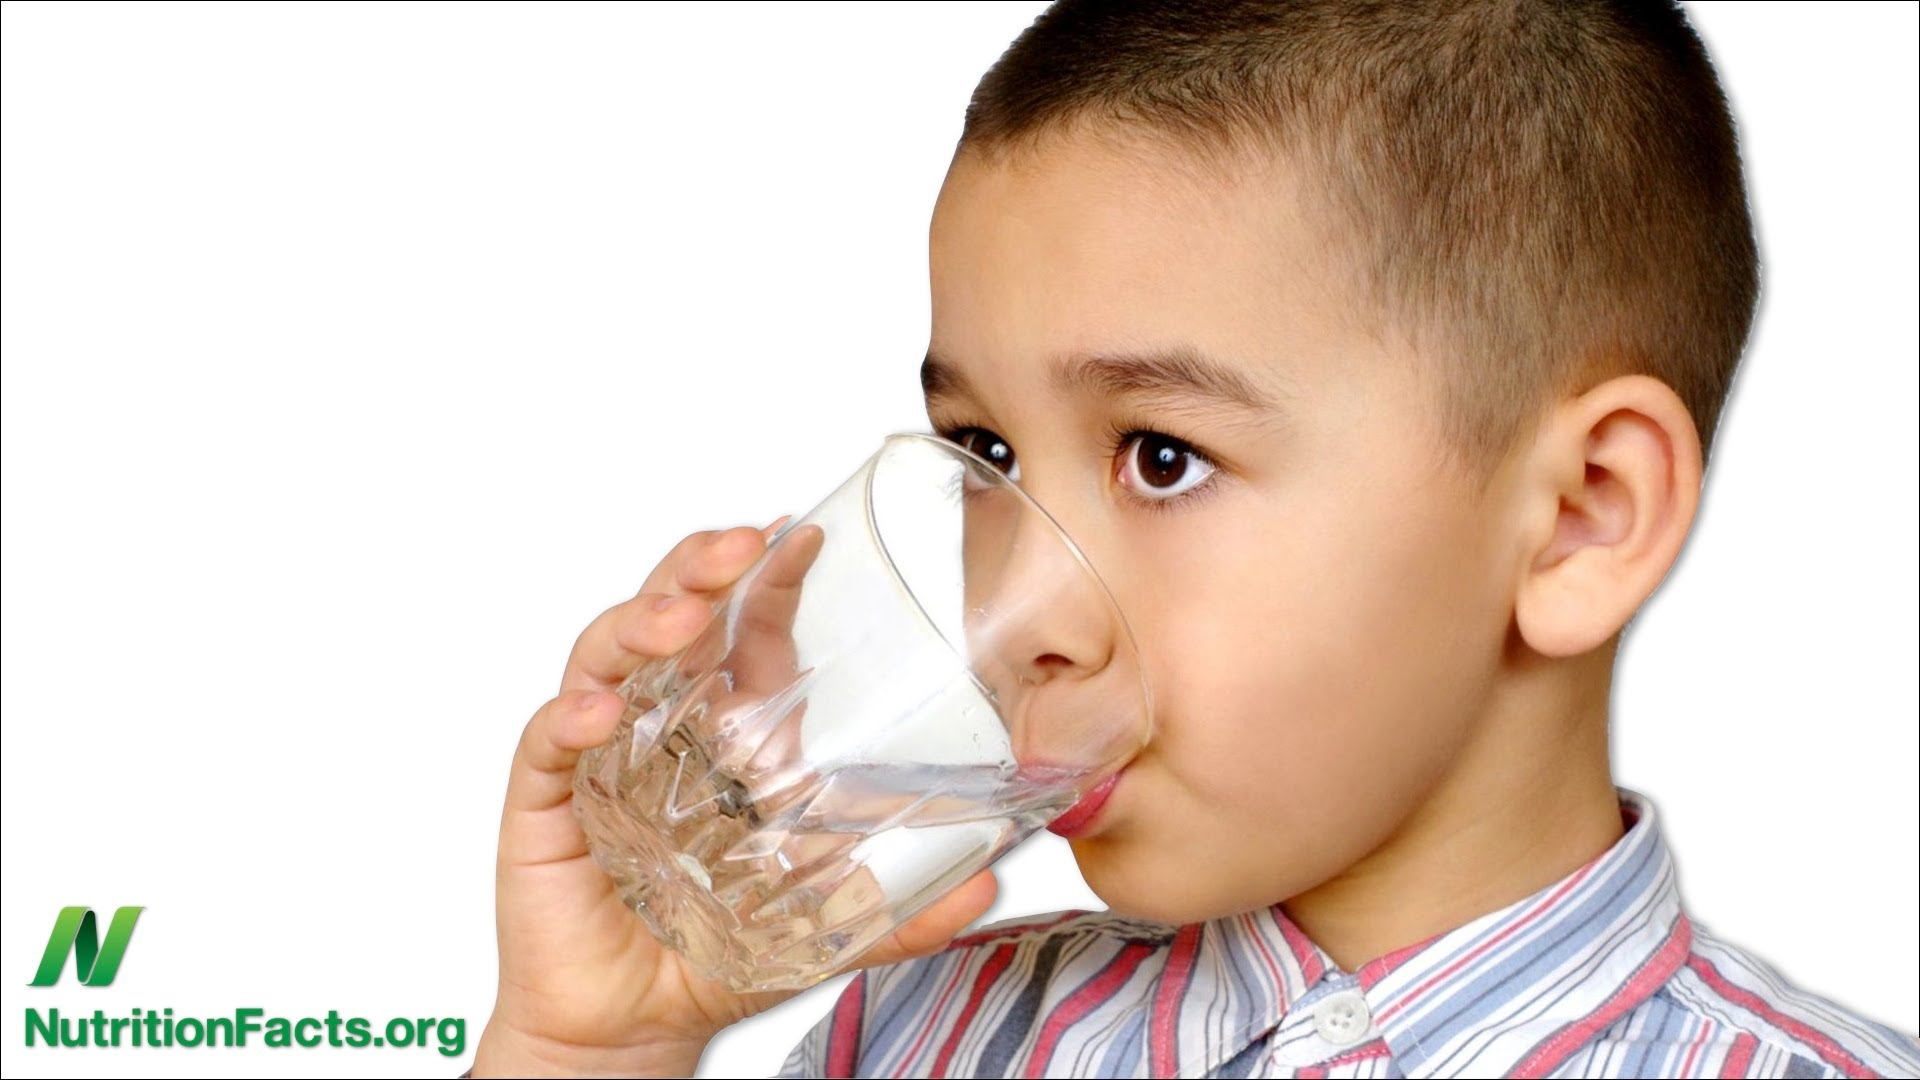 Please clipart may i drink water Children Does Water  Drink